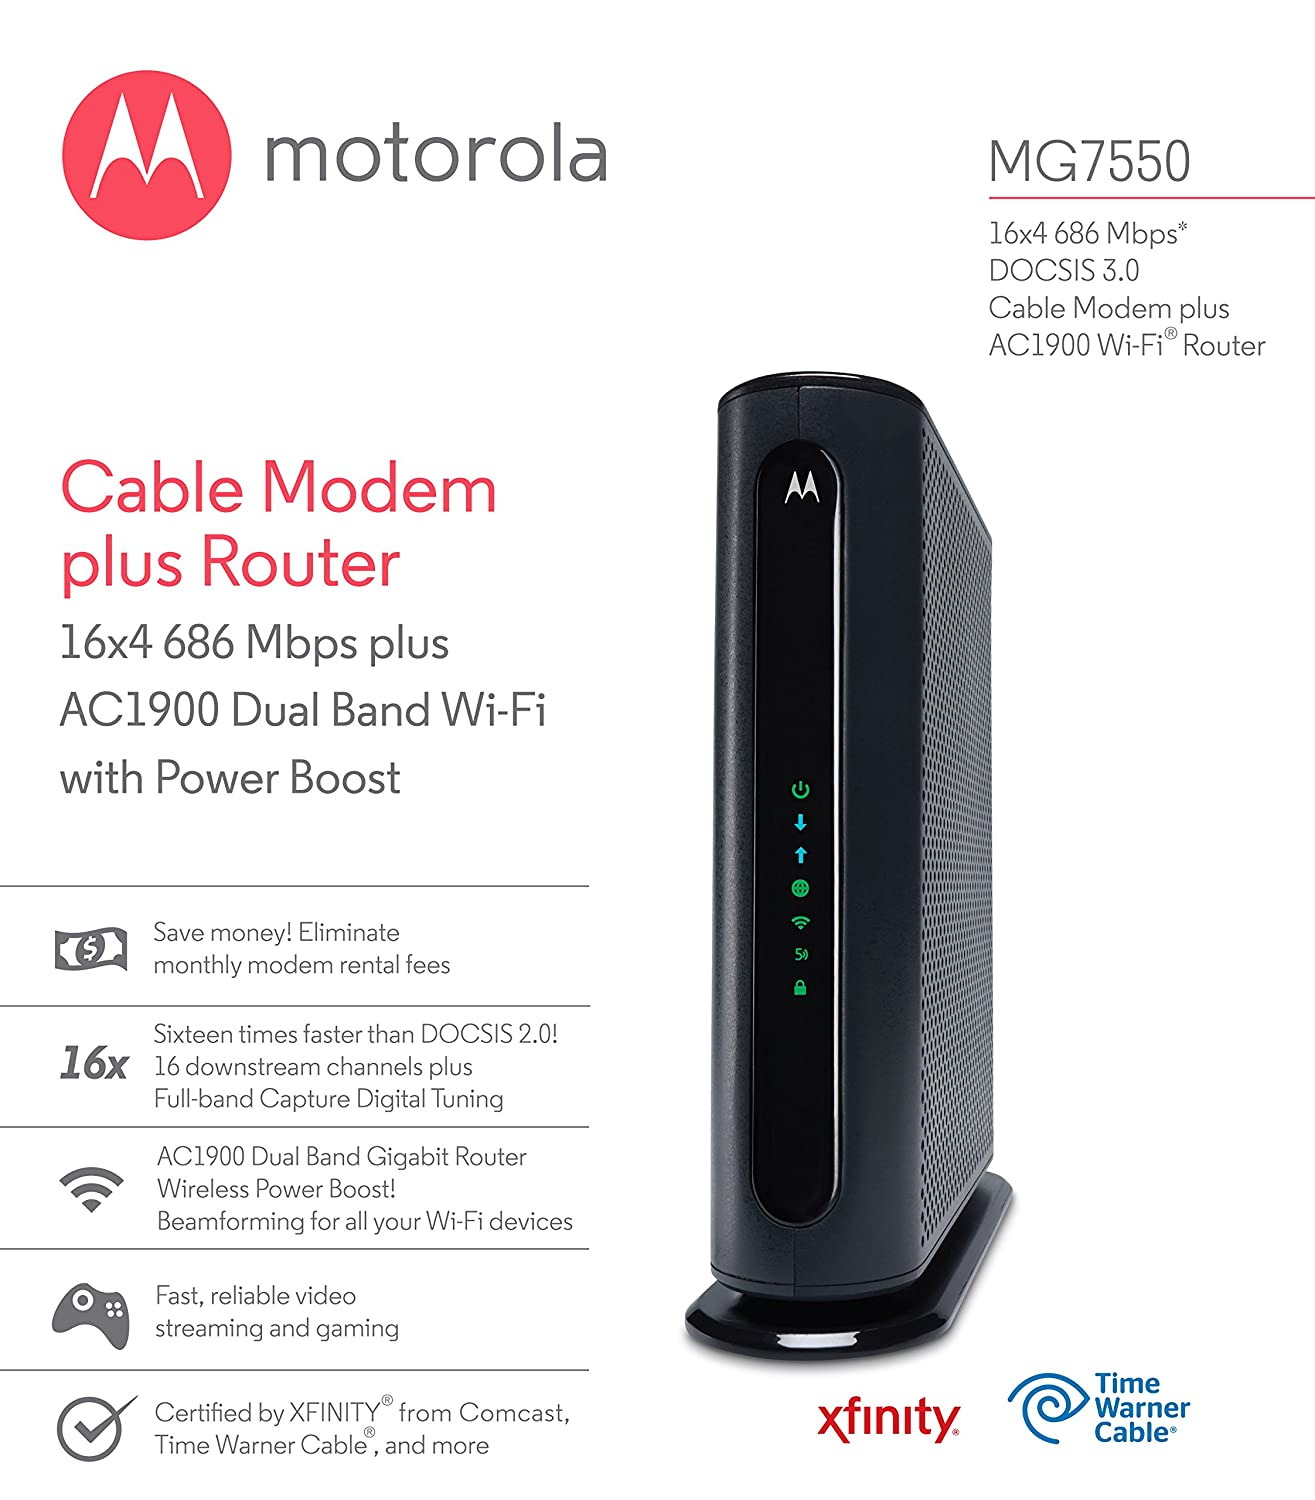 Amazon.com: MOTOROLA MG7550 16x4 Cable Modem plus AC1900 Dual Band Wi-Fi Gigabit Router with Power Boost, 686 Mbps DOCSIS 3.0 - Certified by Comcast, ...